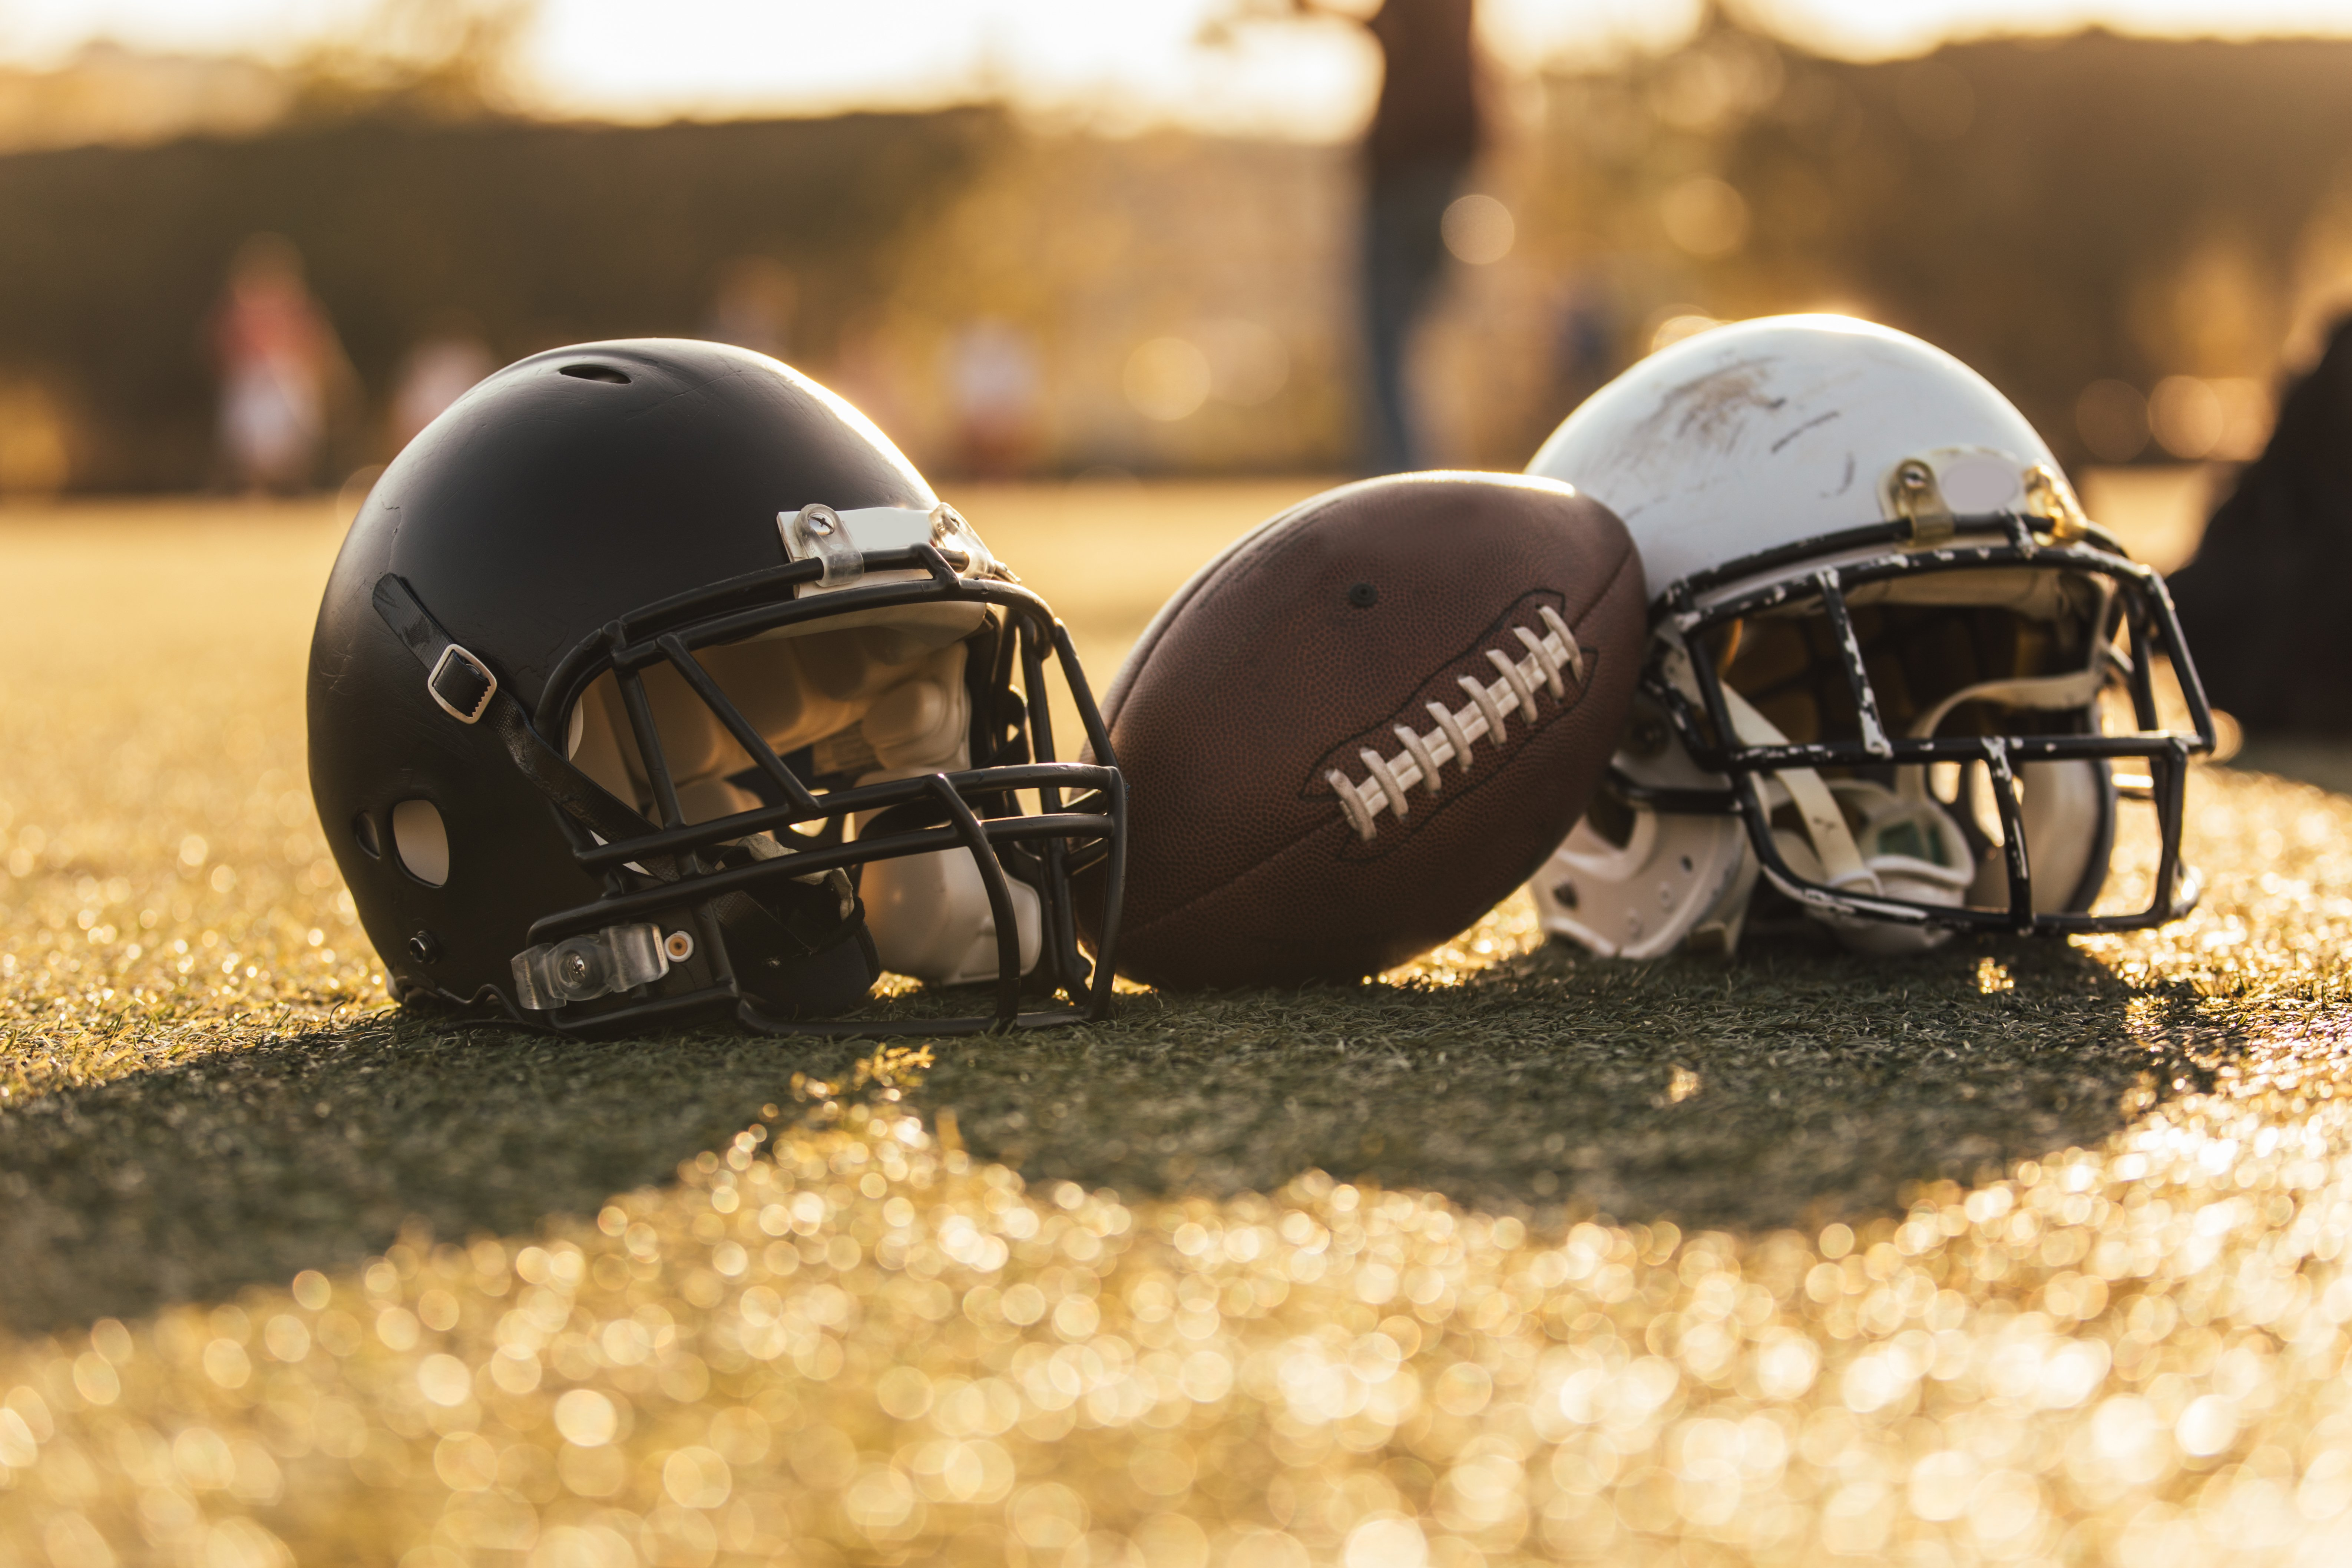 An image of an American football helmet and ball on a field. | Photo : Getty Images